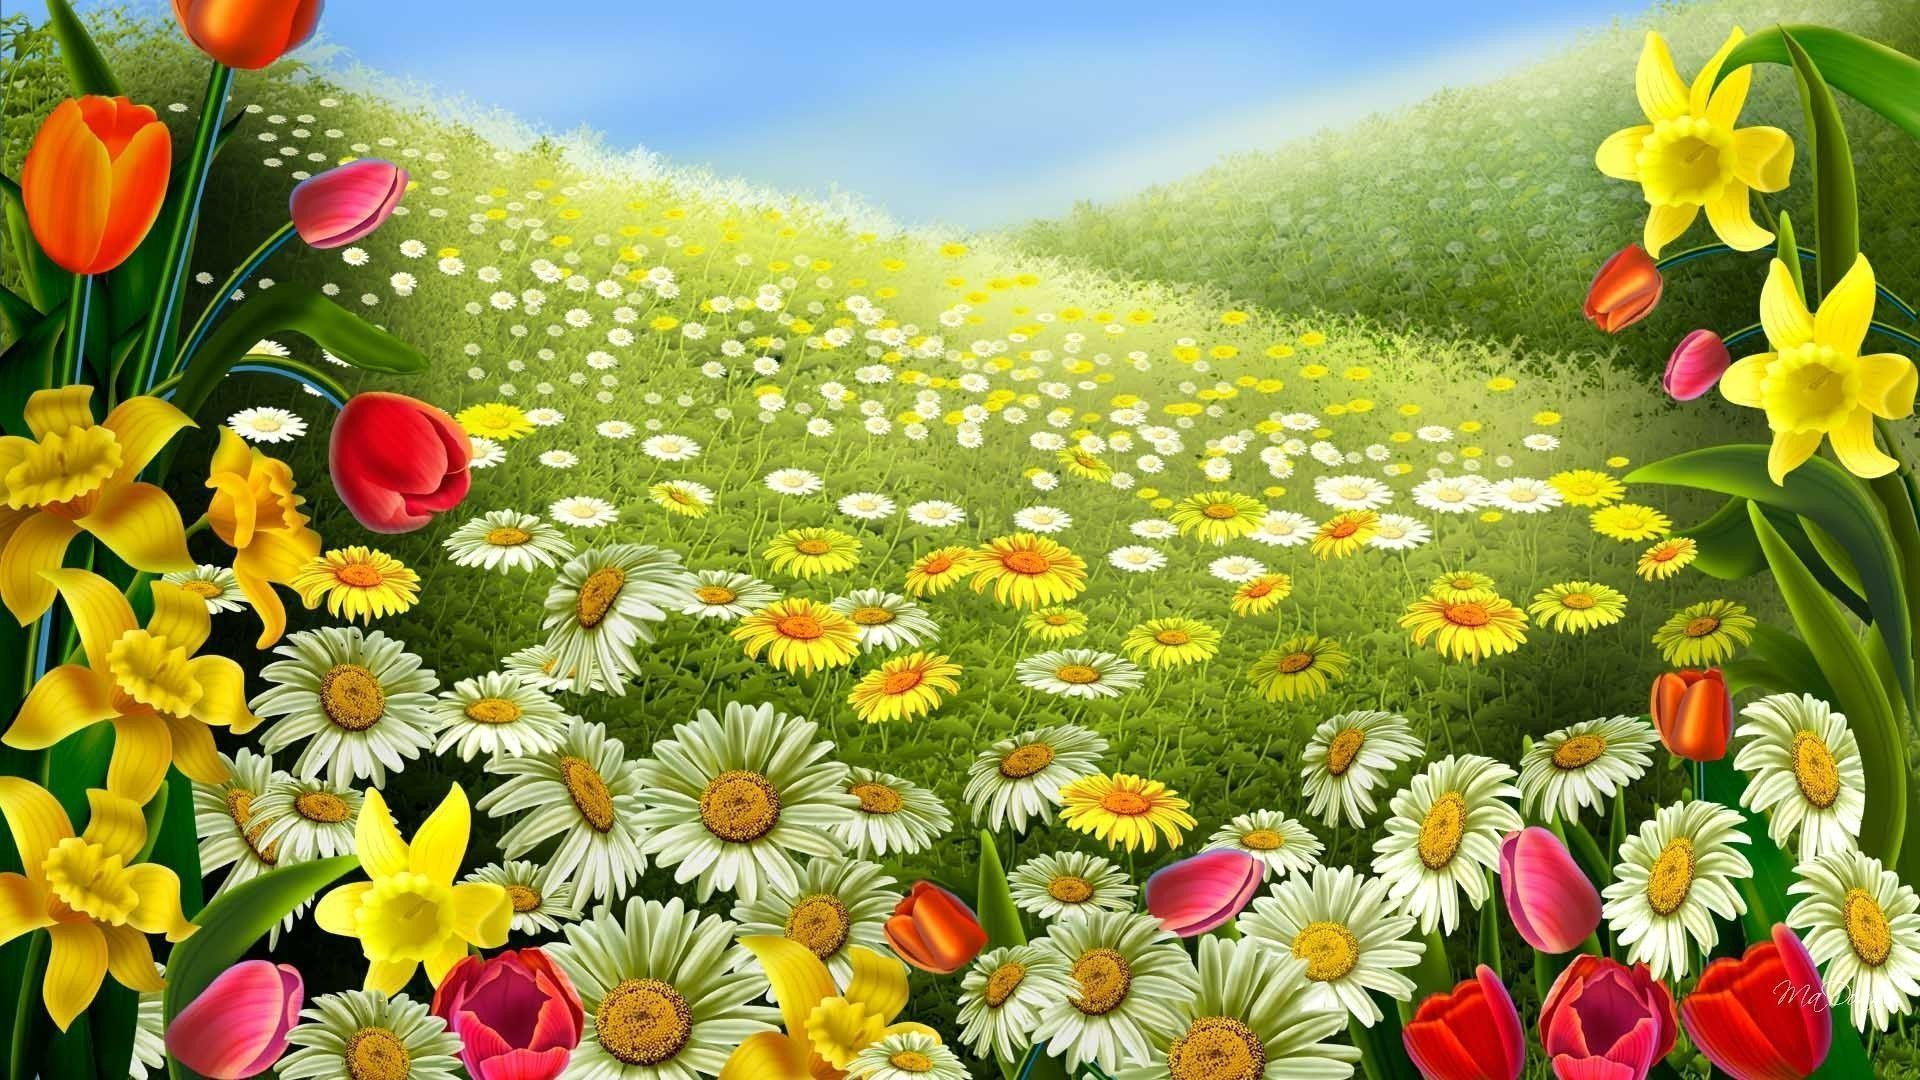 1920x1080 Desktop Backgrounds Hd Spring Wallpapers PX ~ Spring .